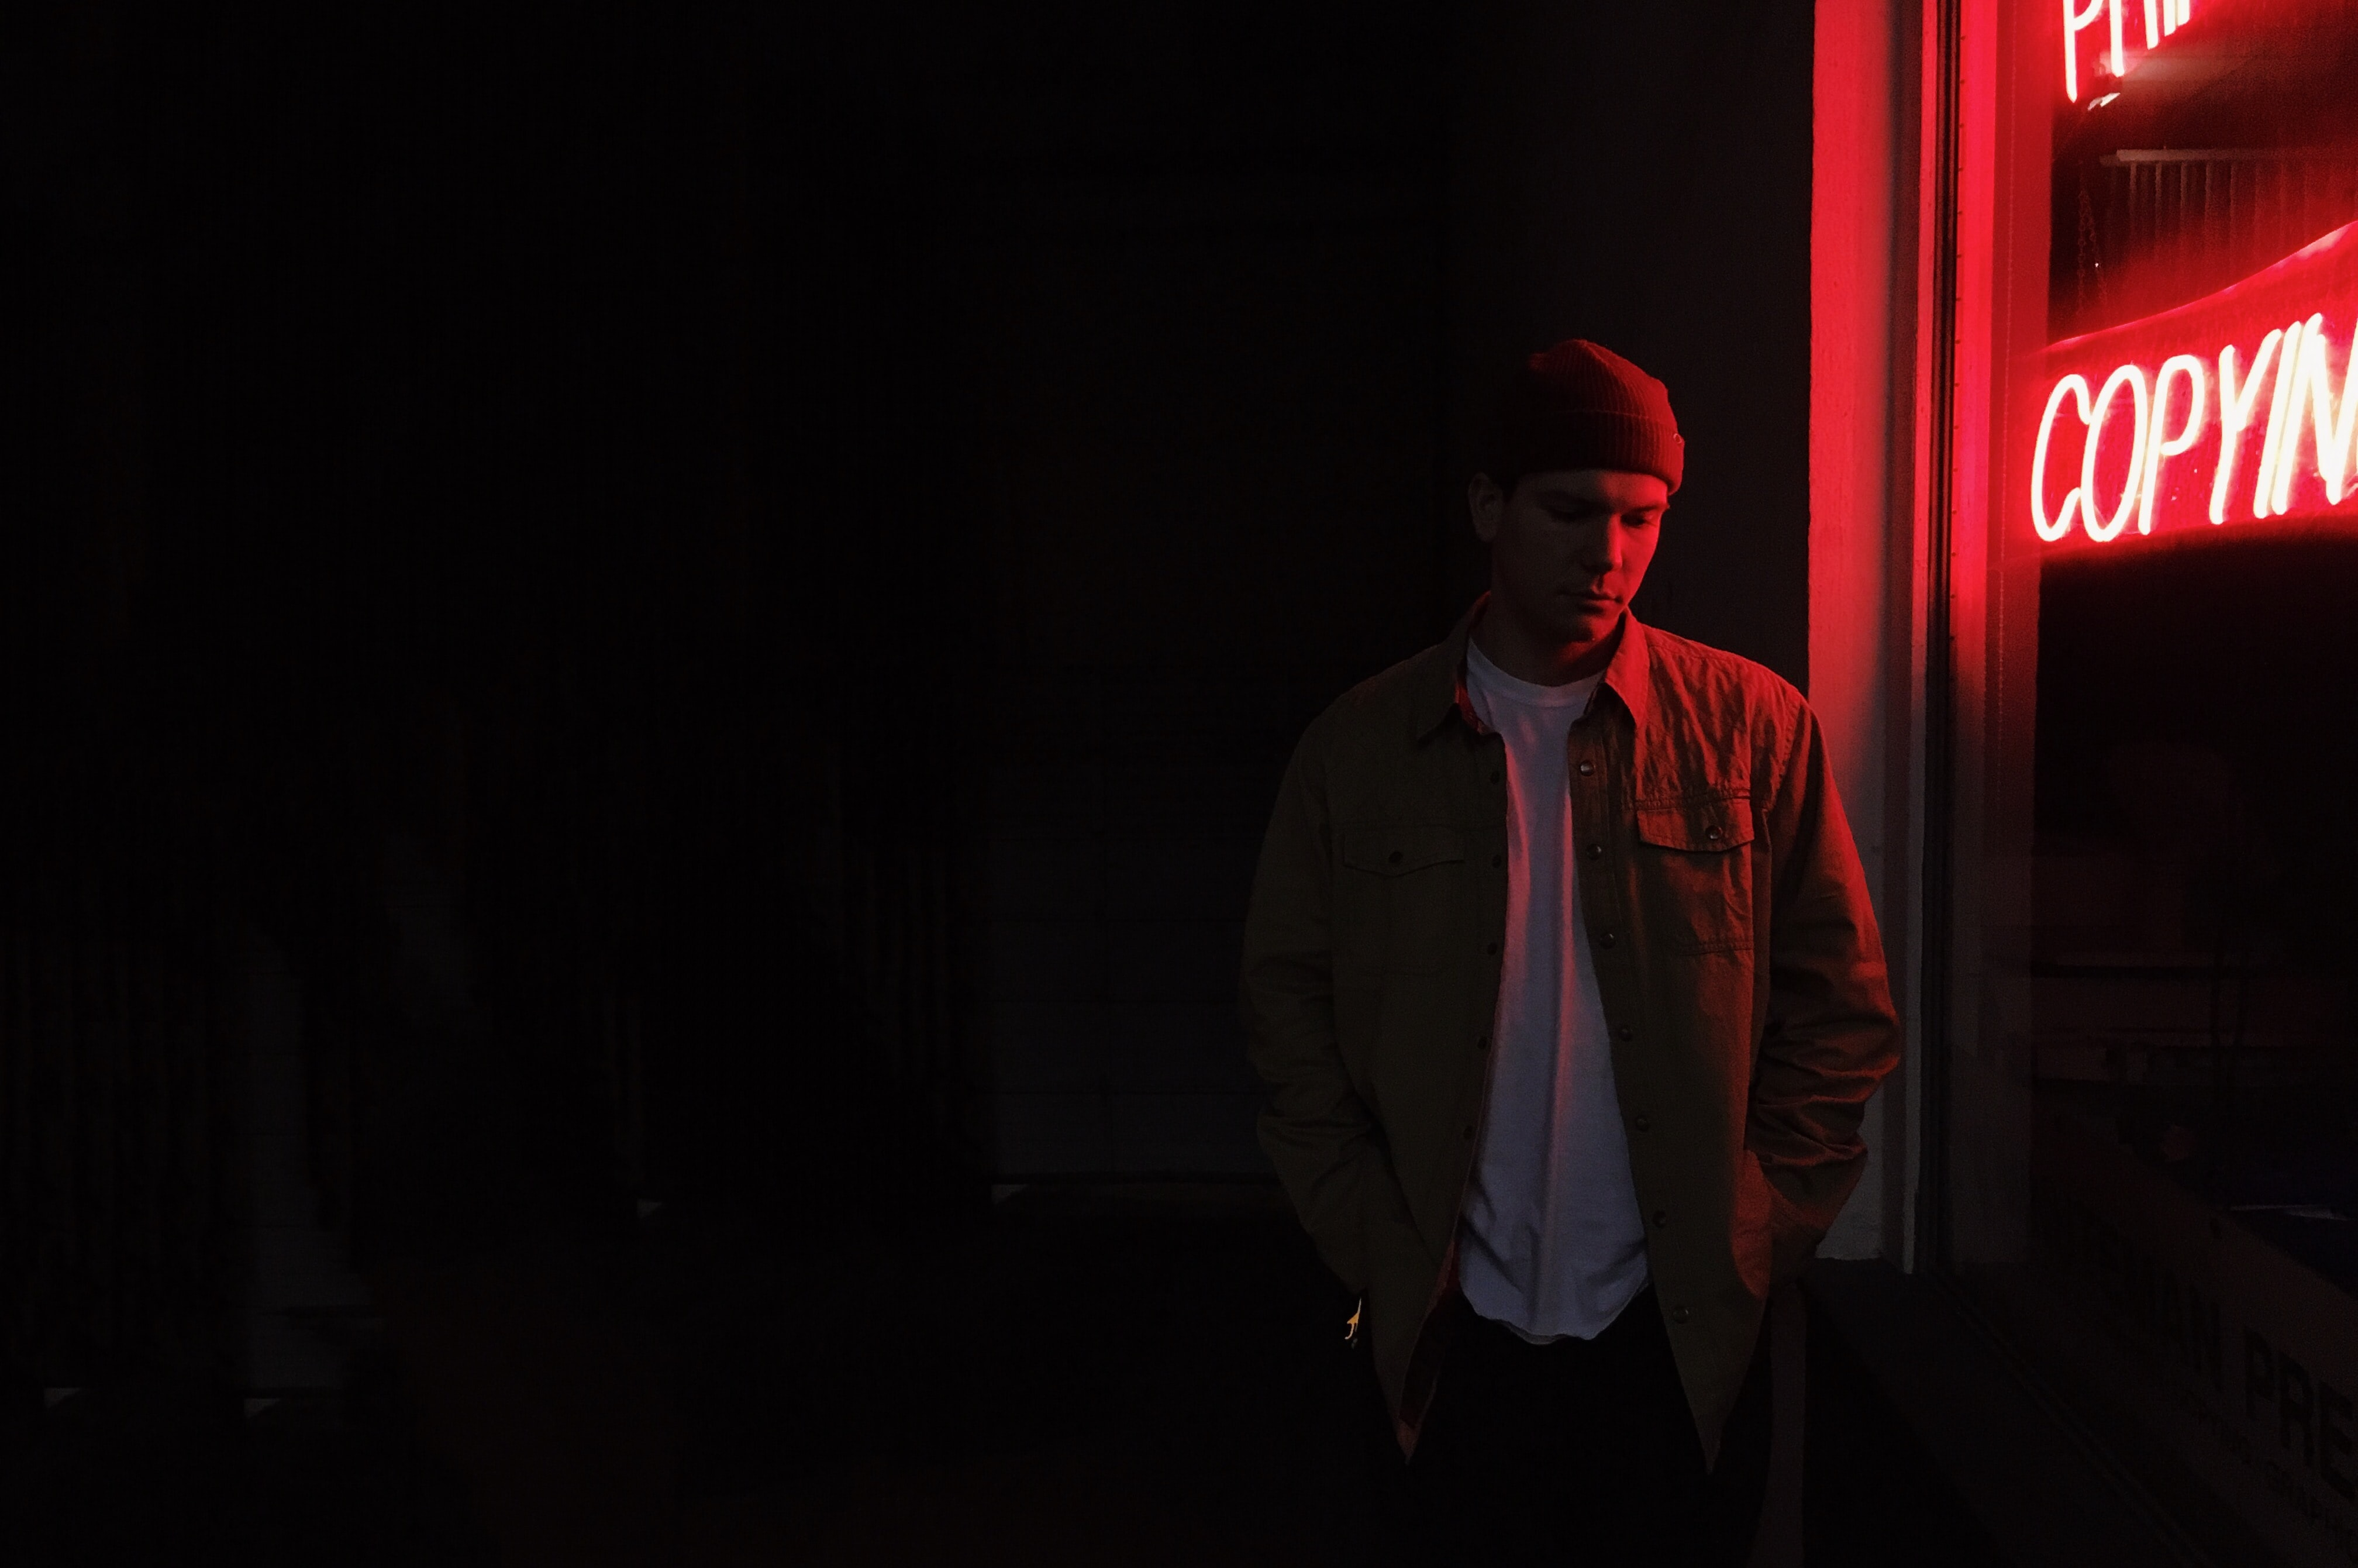 man standing near red neon sign